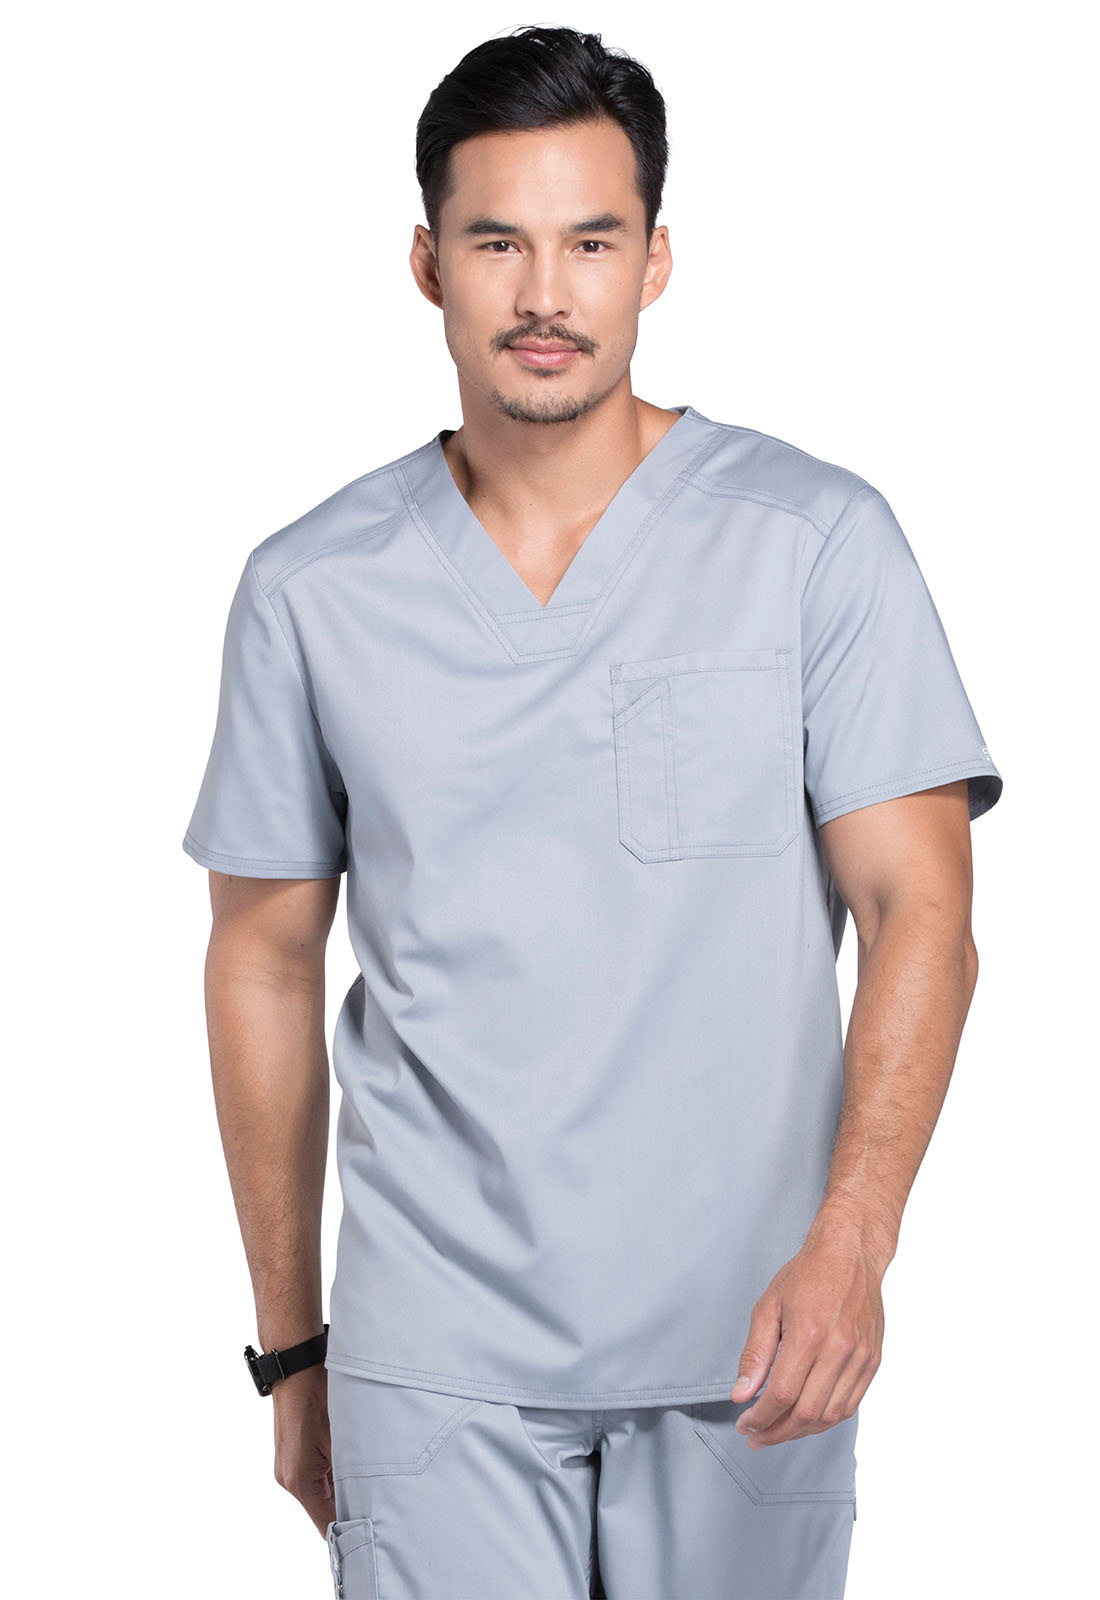 52c179e0e08 WW Revolution Men's V-Neck Top in Grey WW690-GRY from Scrubs Express